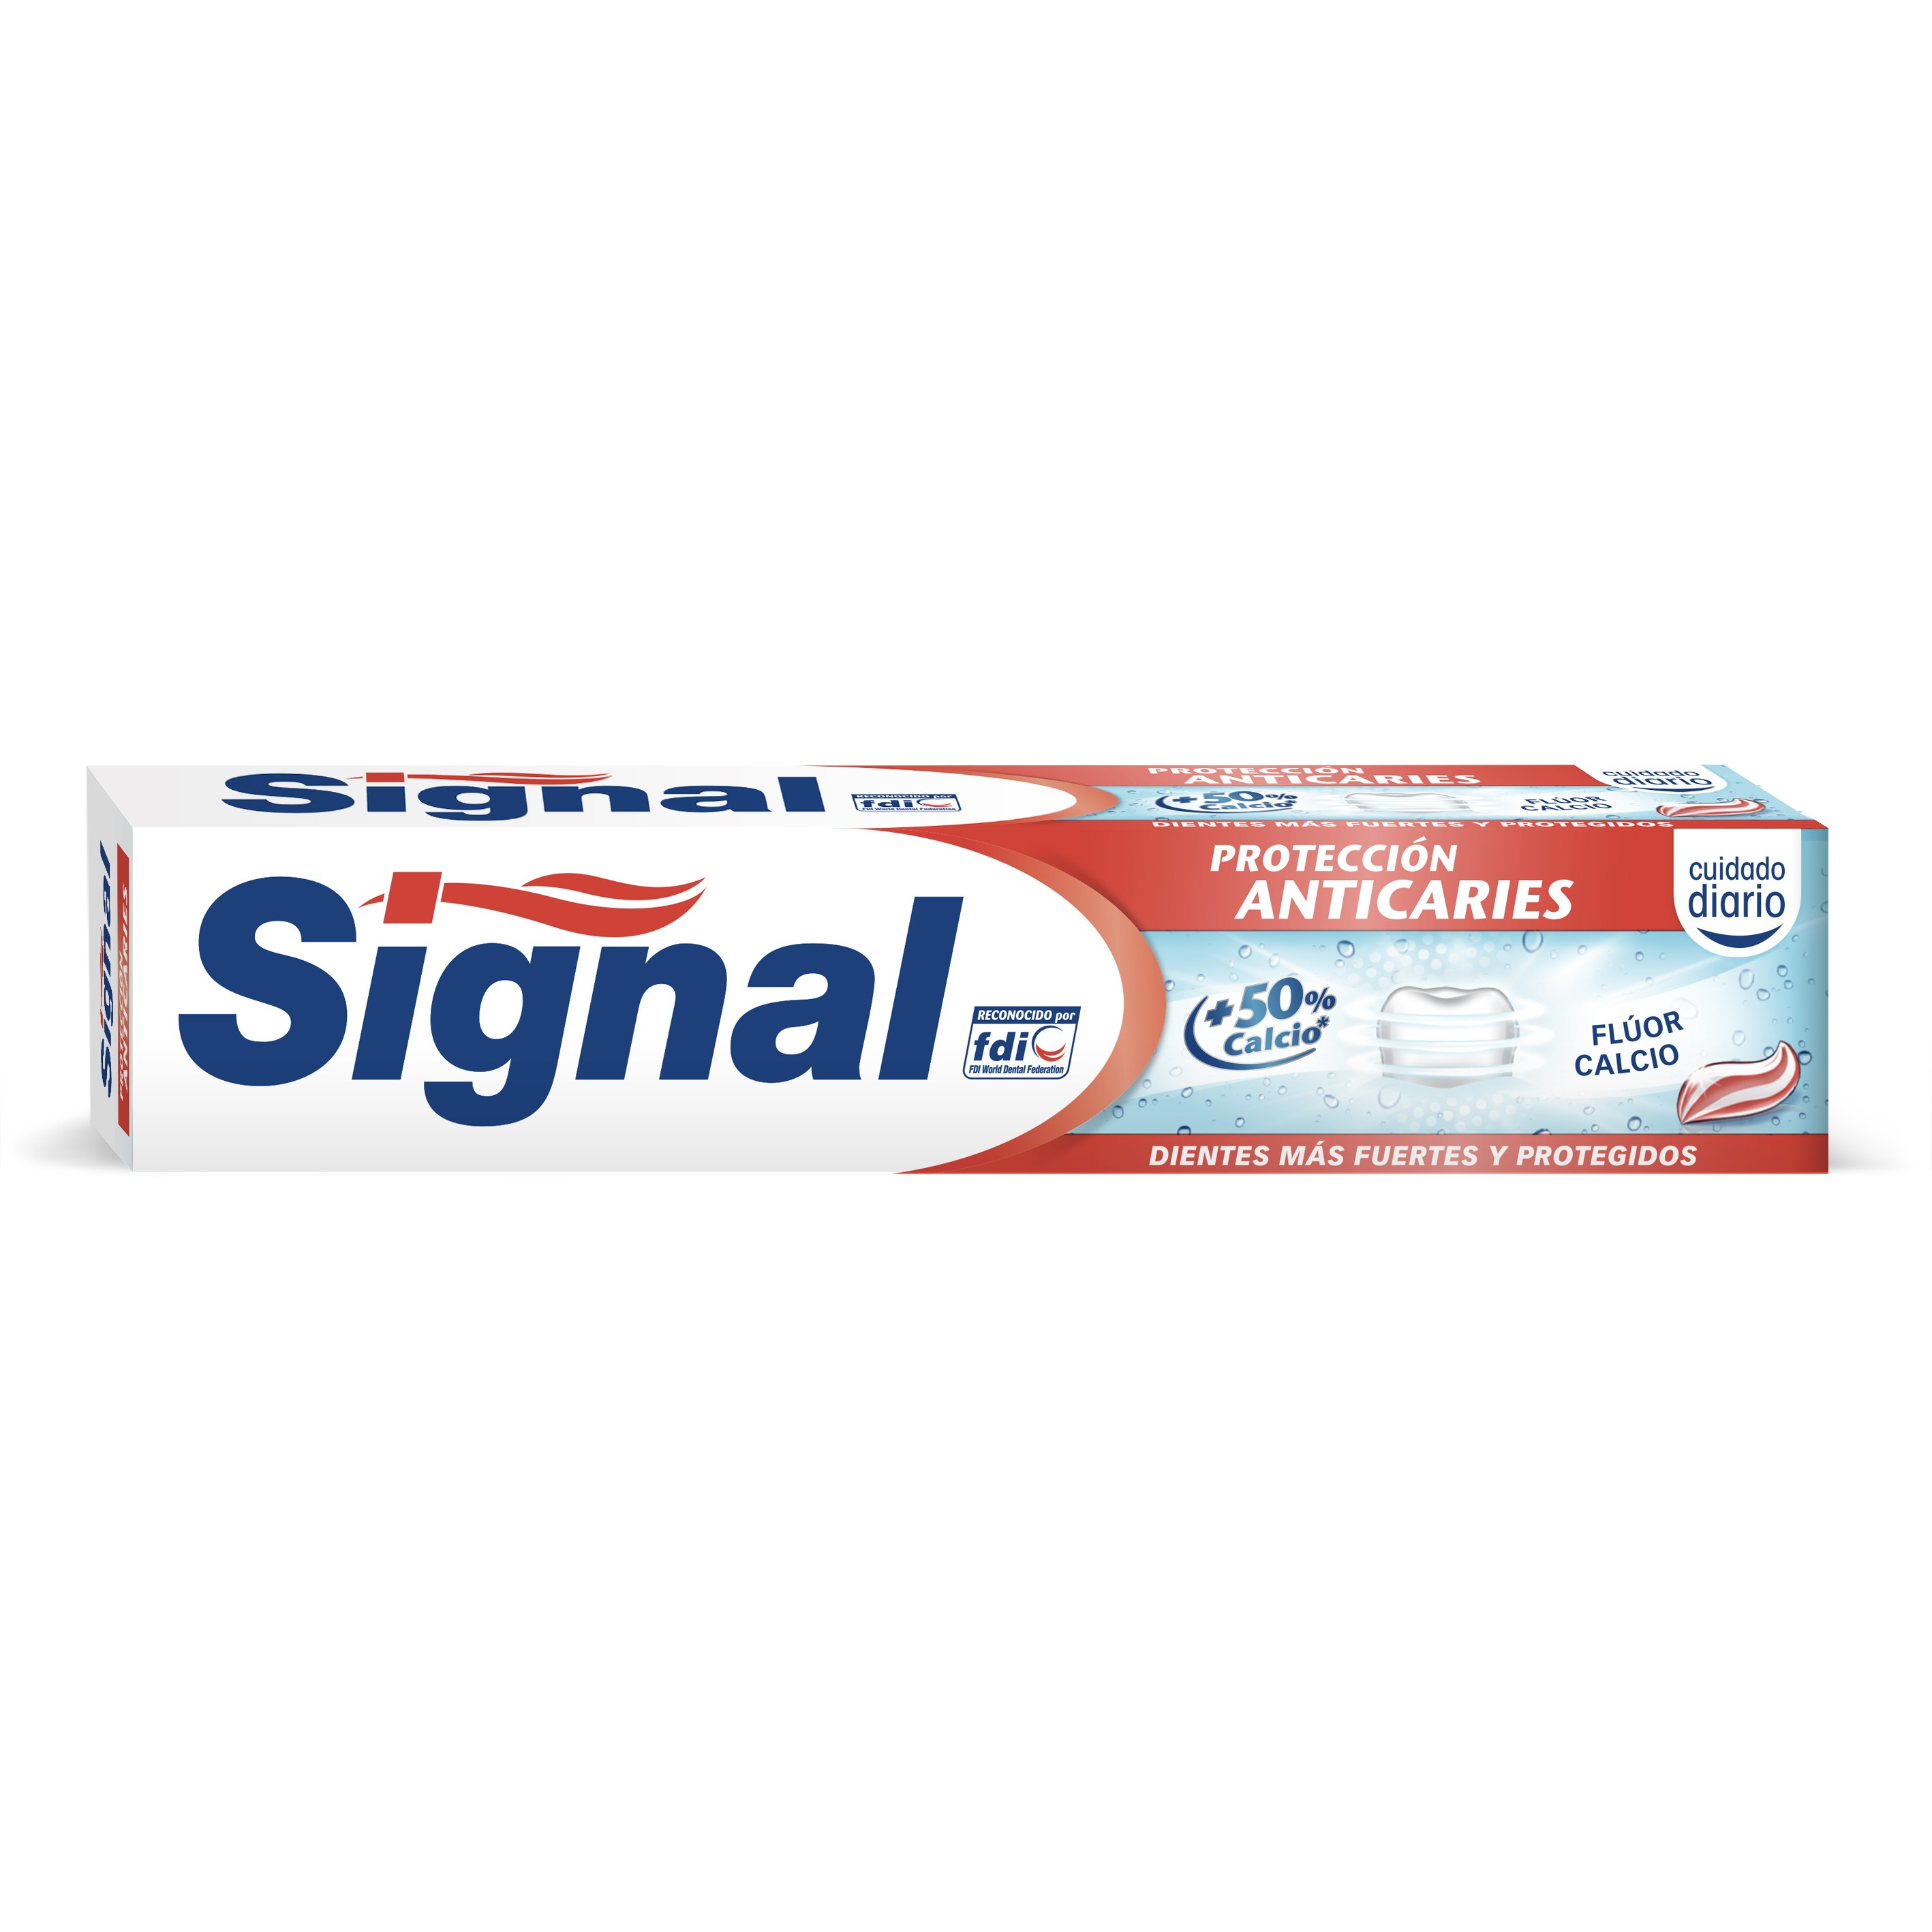 Signal pasta dentifrica proteccion anticaries fluor calcio tubo de 75ml.